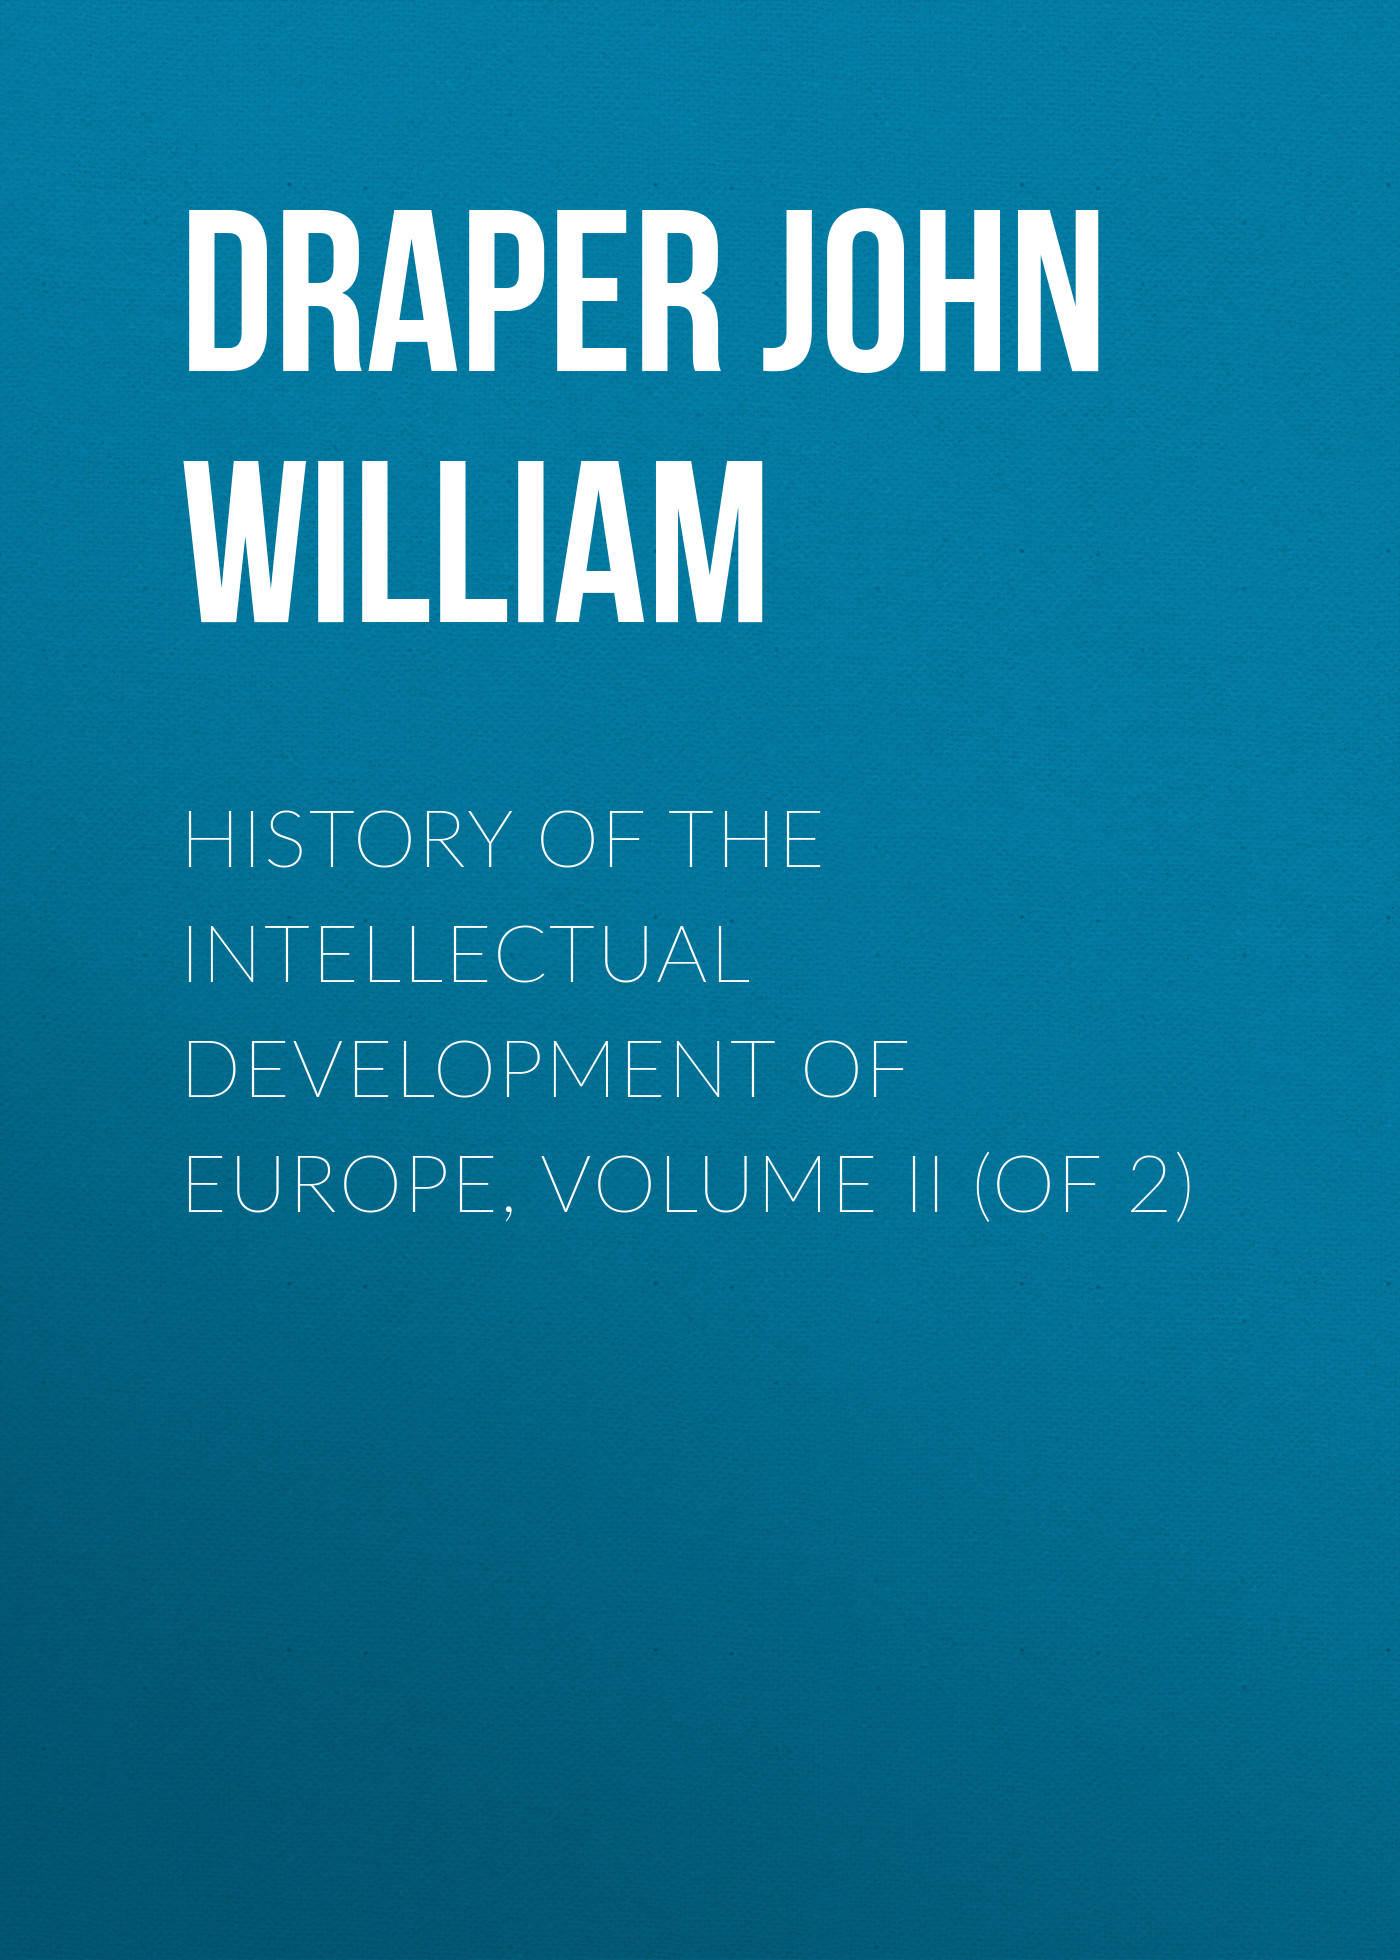 лучшая цена Draper John William History of the Intellectual Development of Europe, Volume II (of 2)